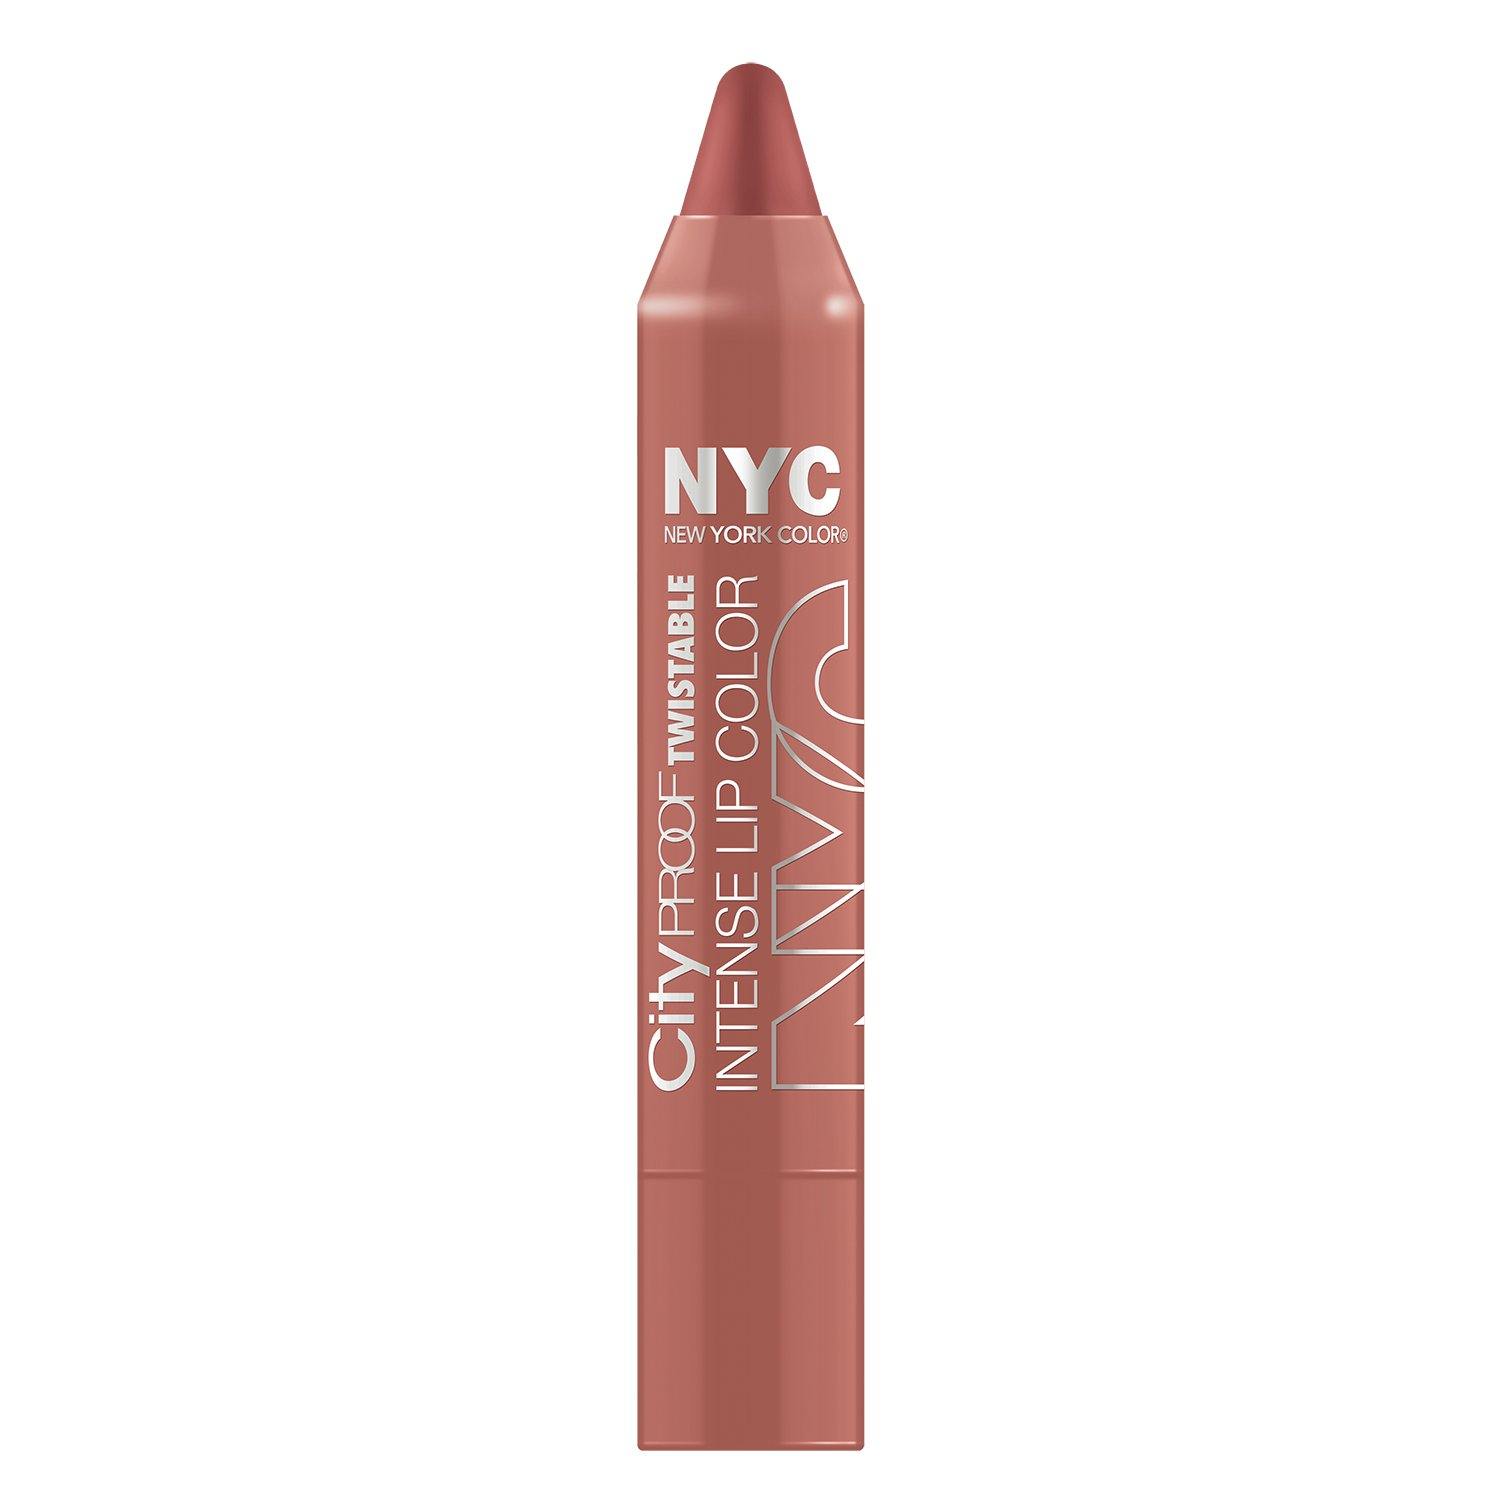 N.Y.C. New York Color City Proof Twistable Intense Lip Color, Brooklyn Brown Stone, 0.09 Ounce Coty 27422110011